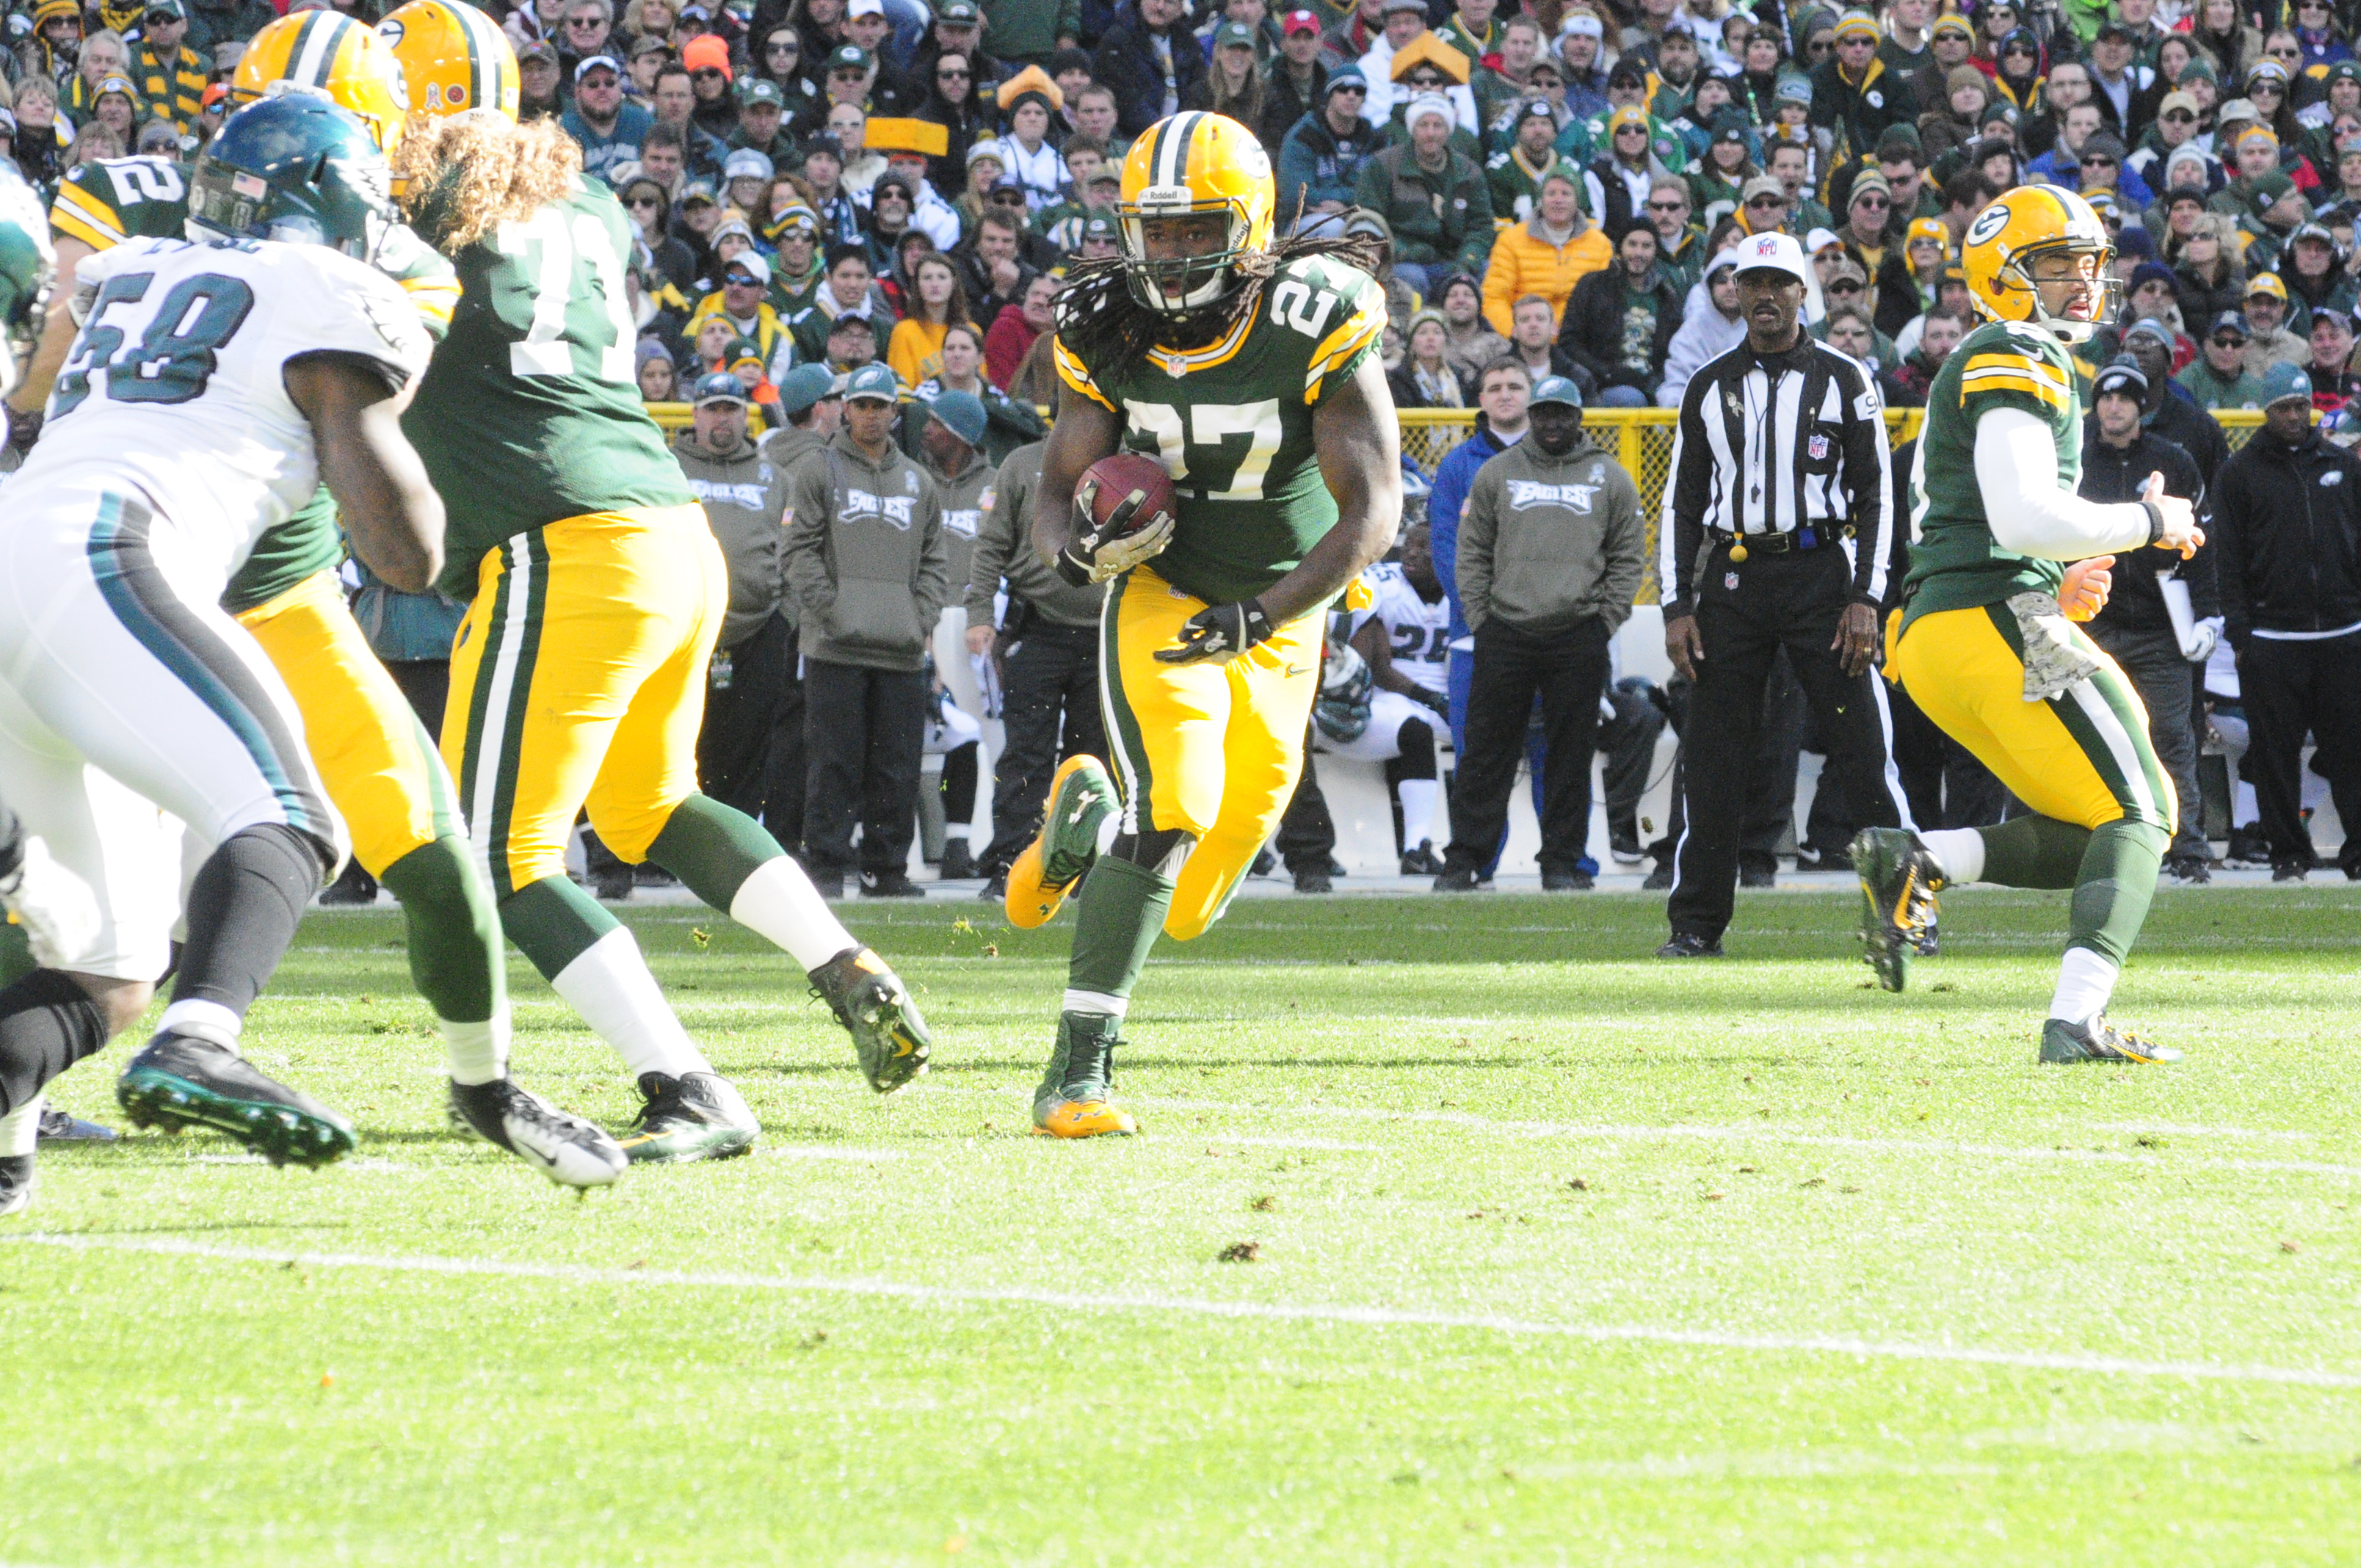 Eddie Lacy has been a battering ram through the first half of the season, but when does the team cross the line of using him too much? Raymond T. Rivard photograph